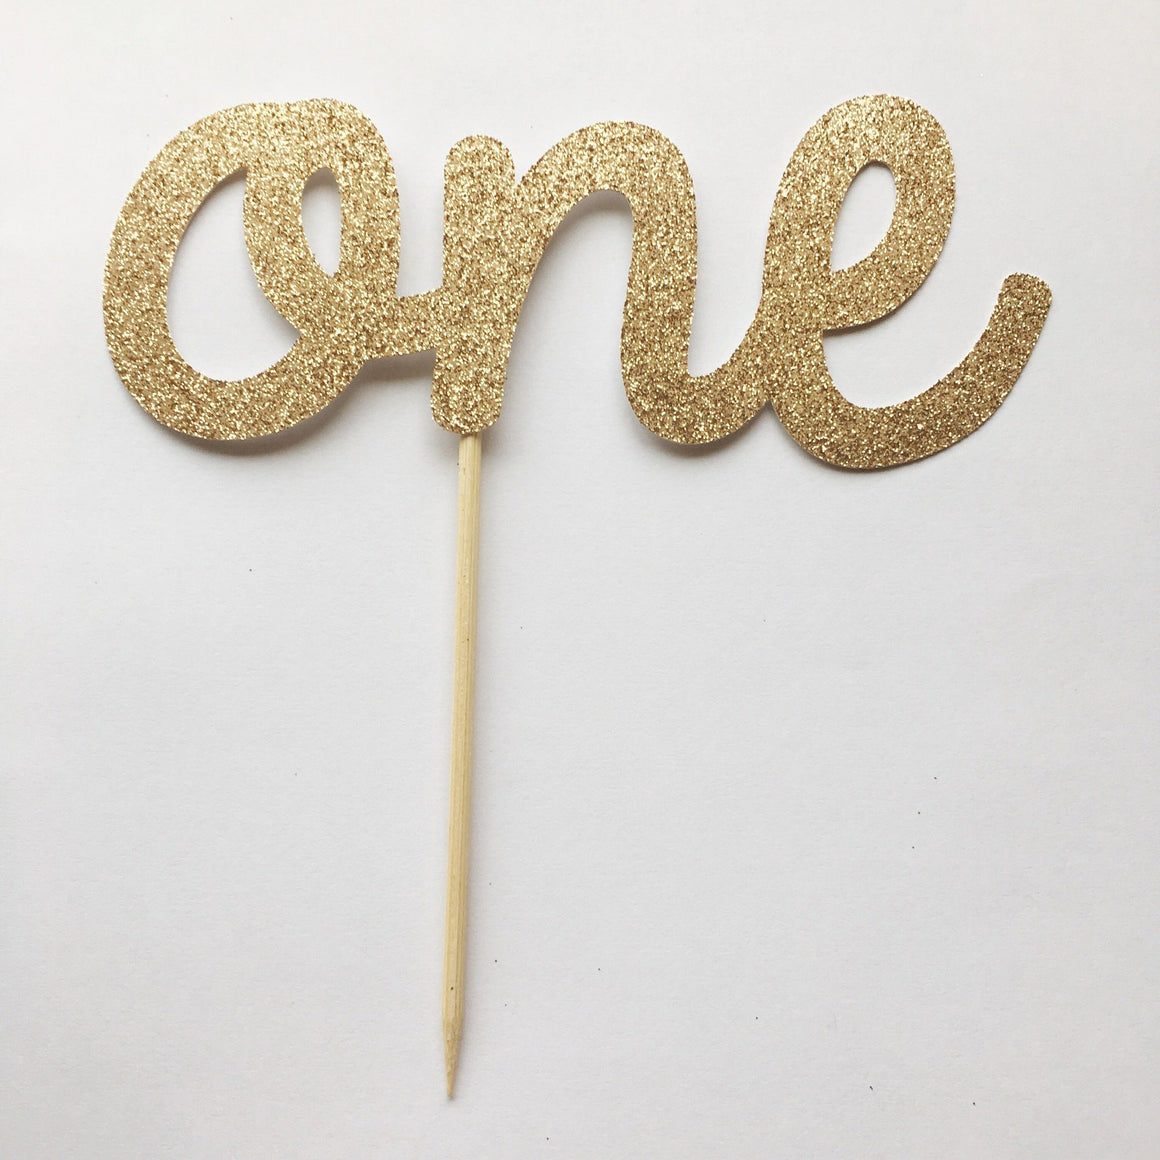 CAKE TOPPER - ONE WHITE GOLD GLITTER, Picks + Toppers, BON + CO - Bon + Co. Party Studio